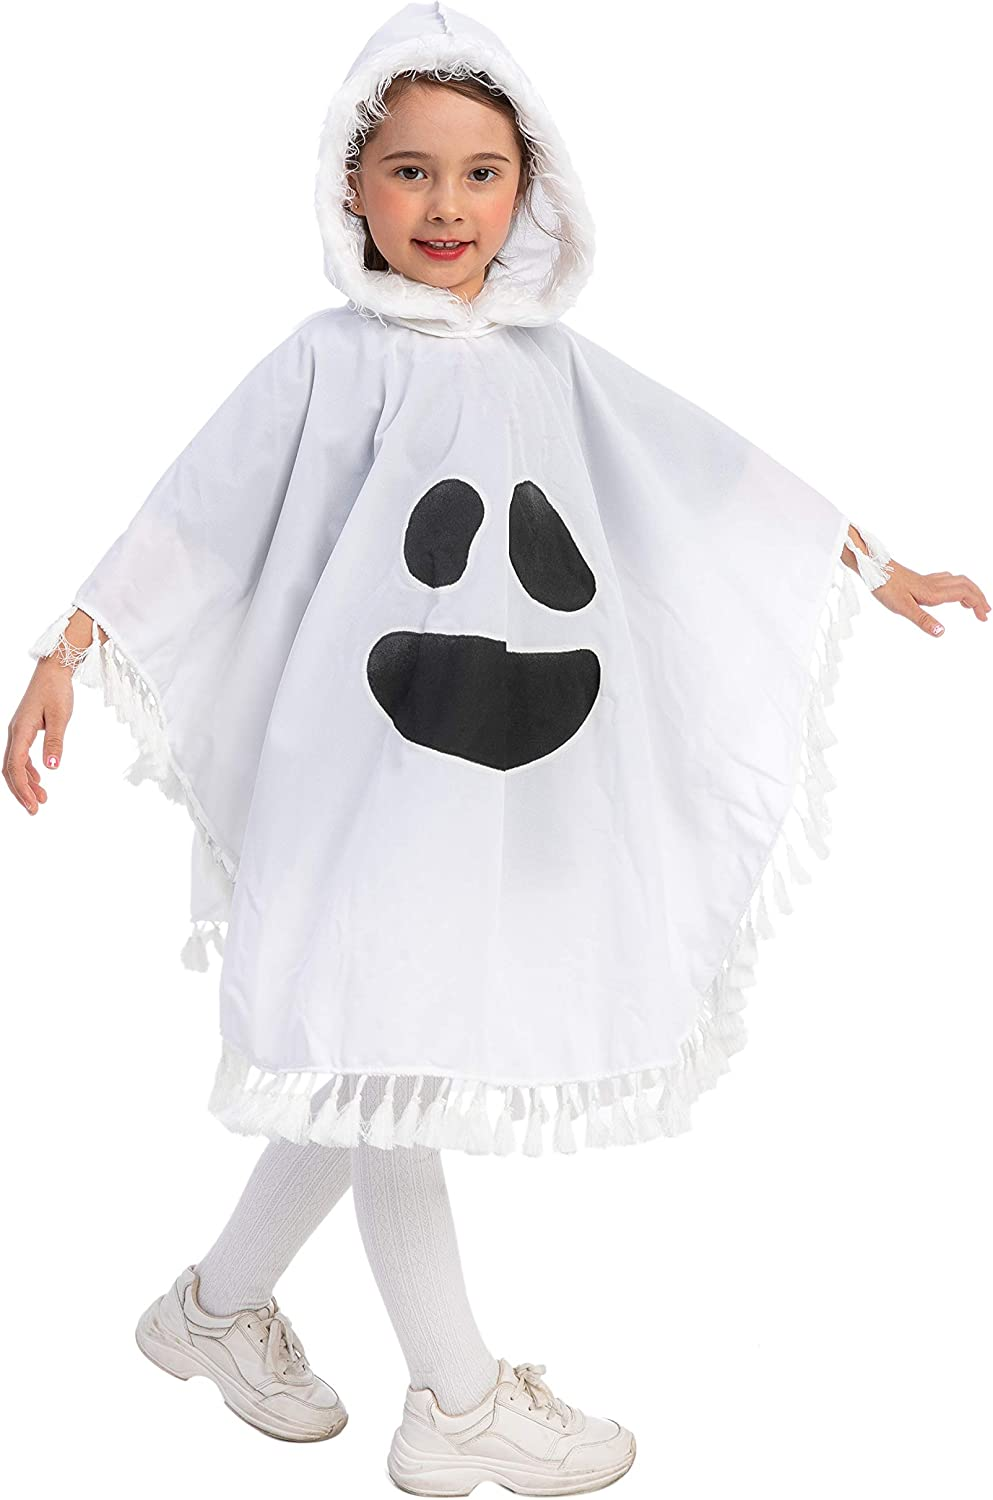 Toddler Kid Baby Girl Halloween Dress Ghost Party Dress Halloween Costume Outfit